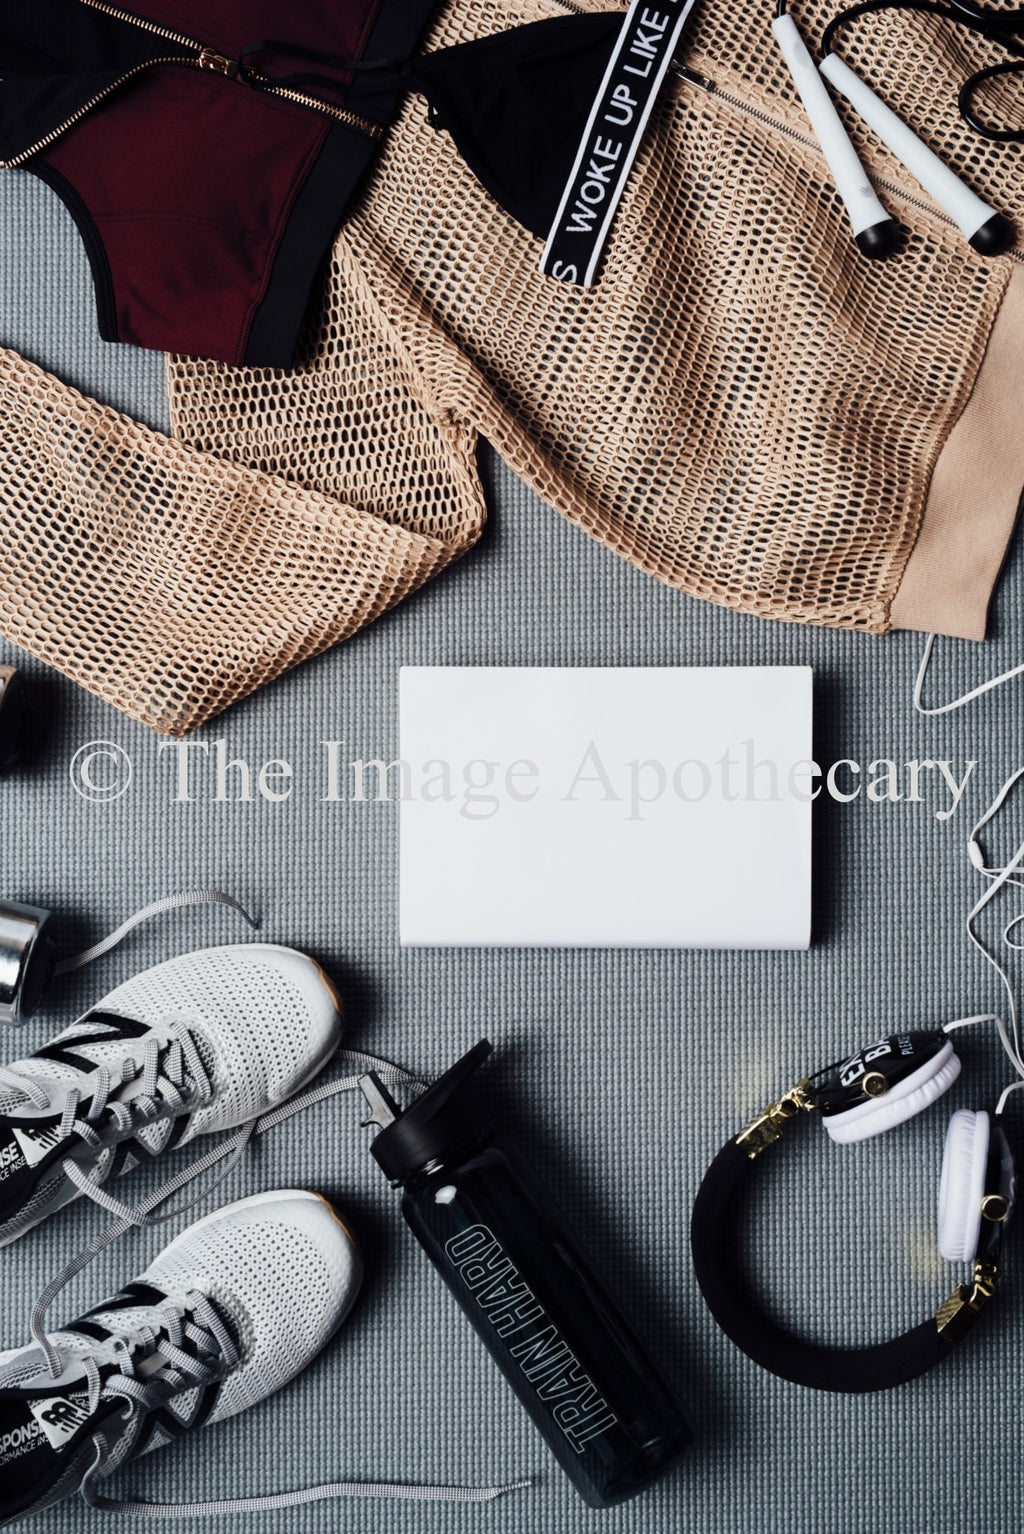 TheImageApothecary-6175M - Stock Photography by The Image Apothecary